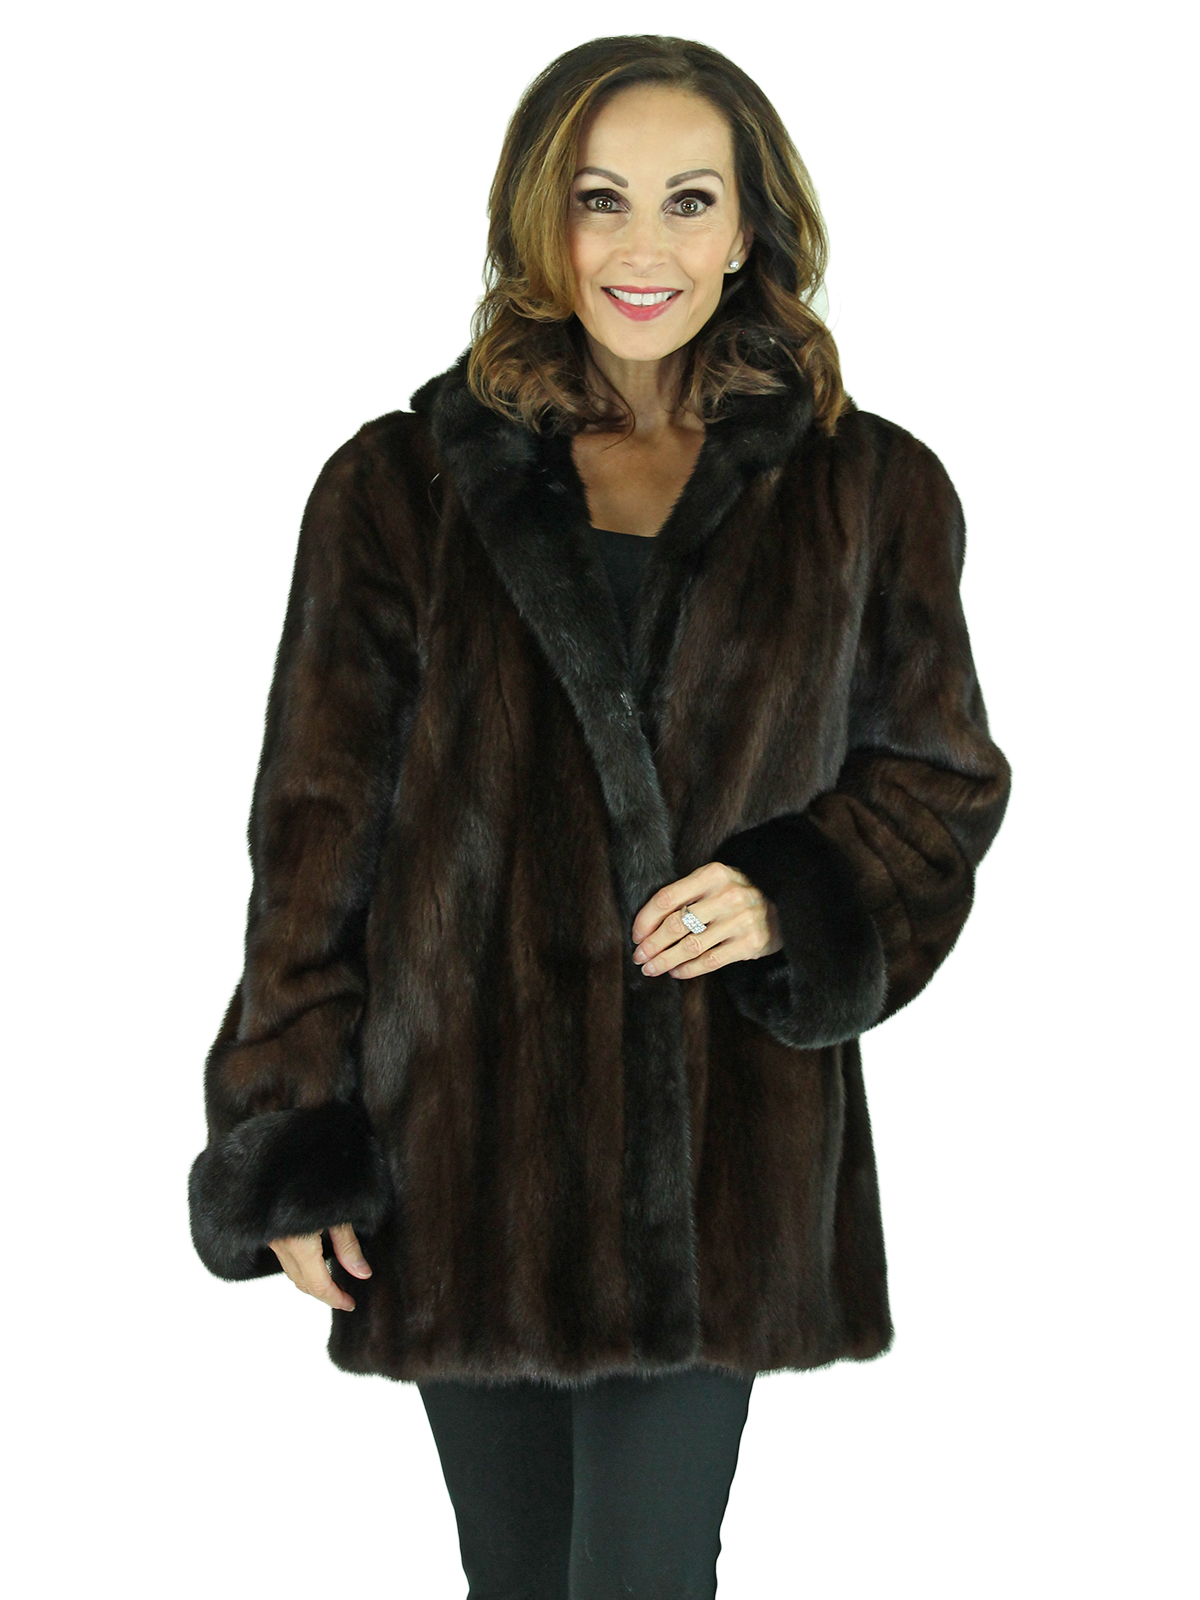 Woman's Mahogany Female Mink Fur Jacket with Detachable Hood